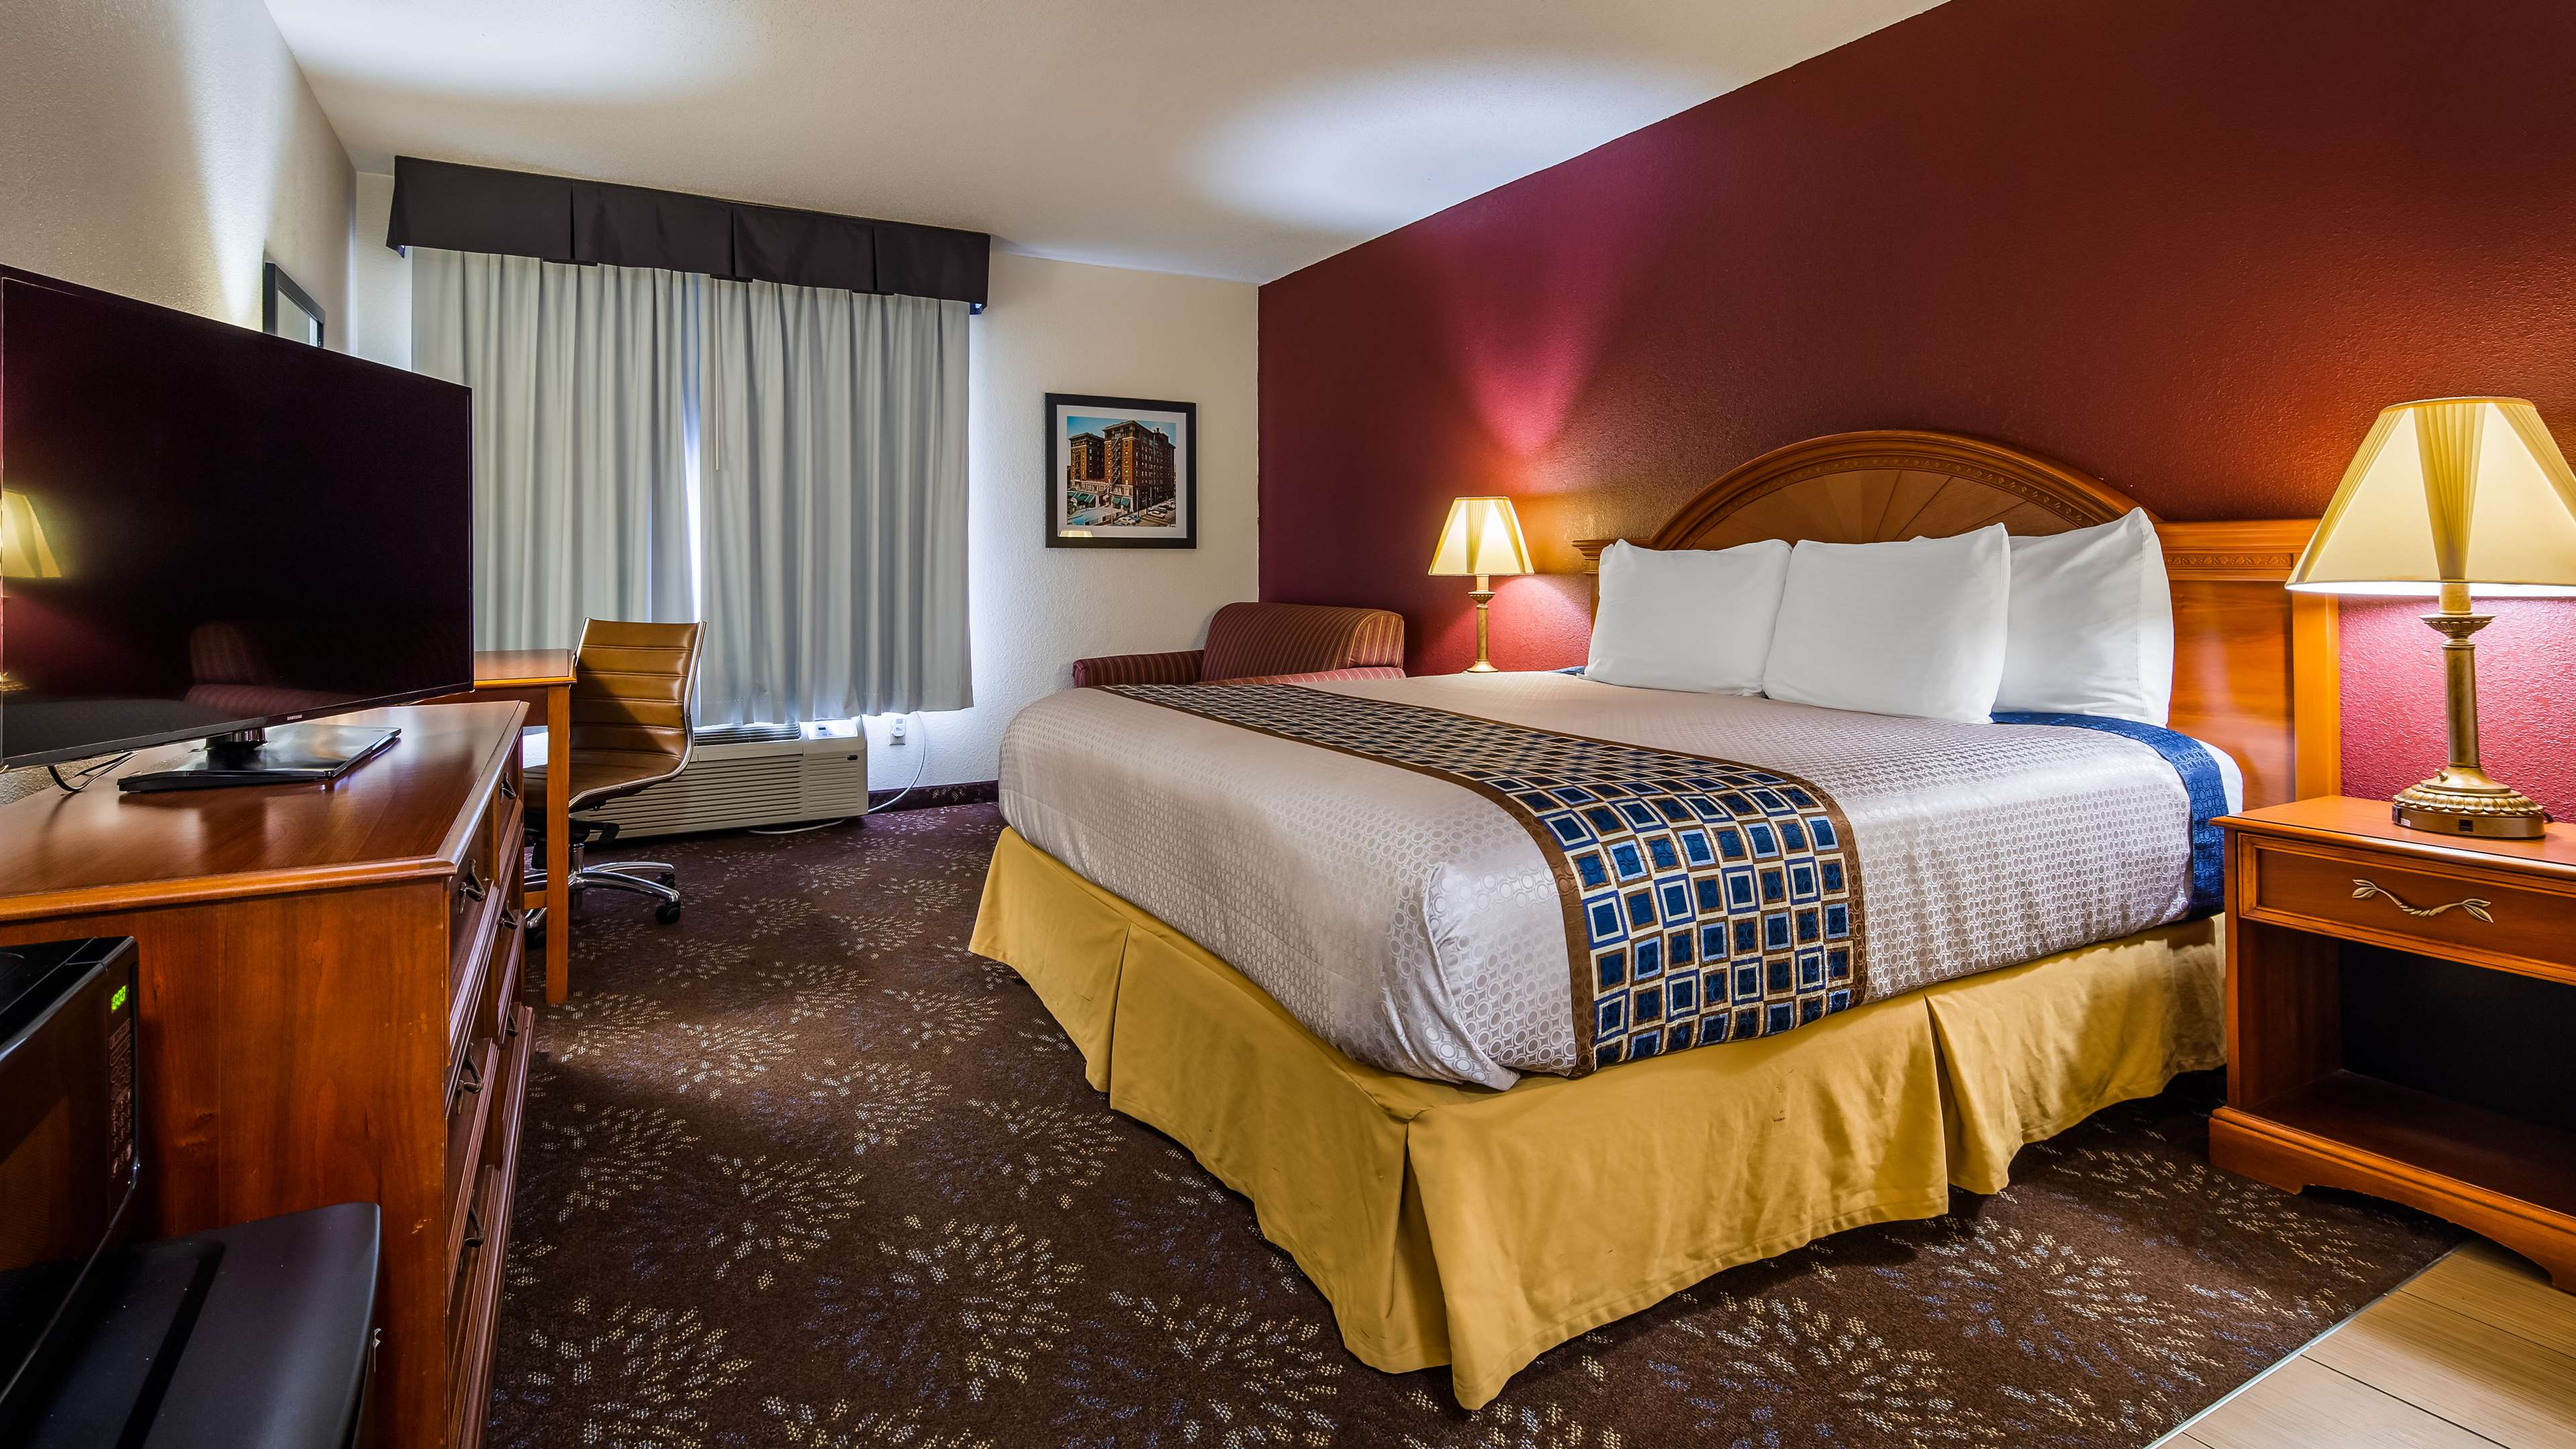 SureStay Plus Hotel by Best Western Evansville image 10